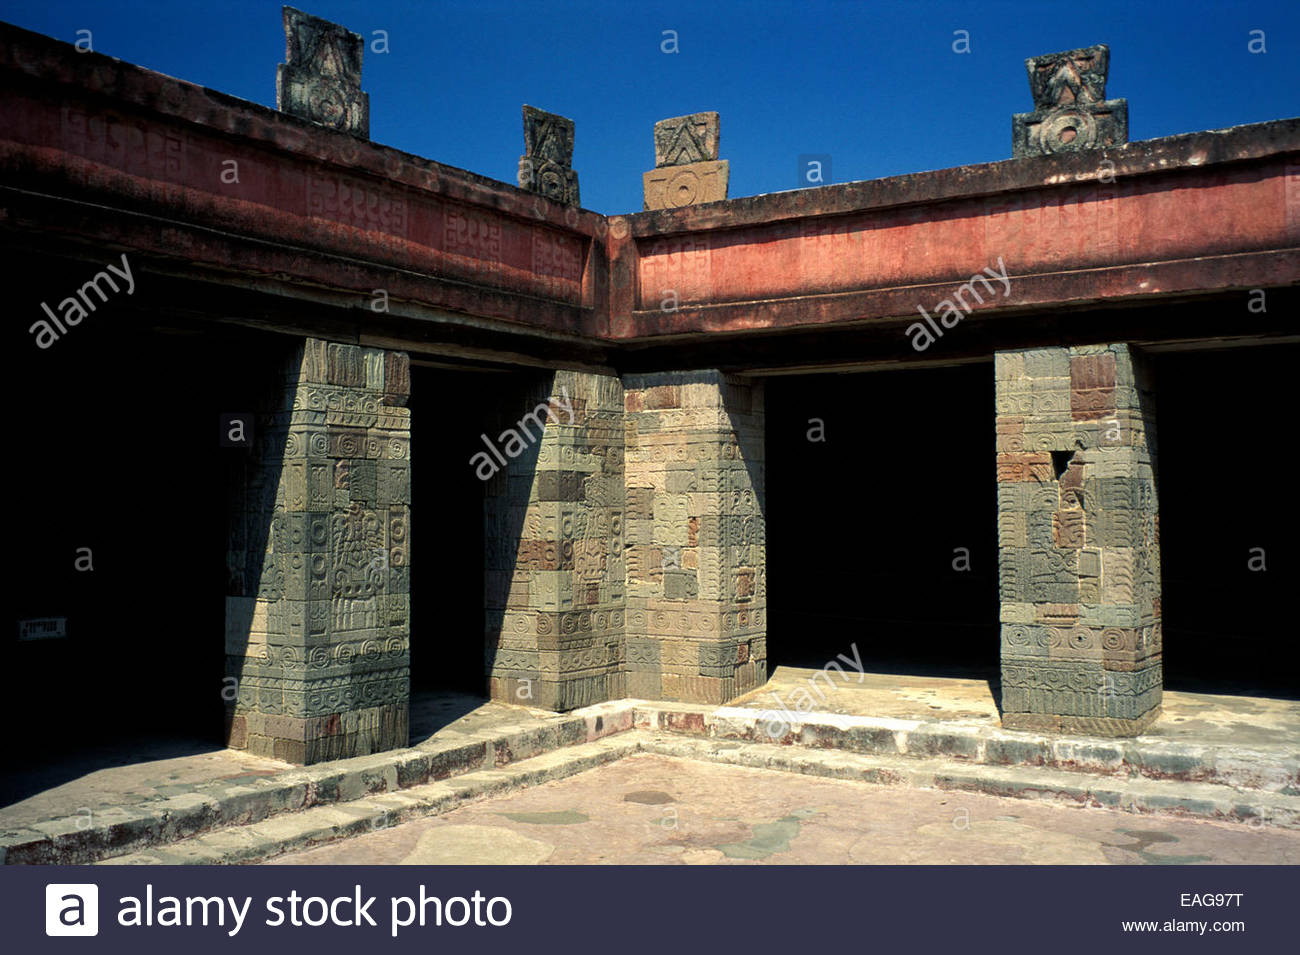 Mexico, archeological site of Teotihuacan - Stock Image